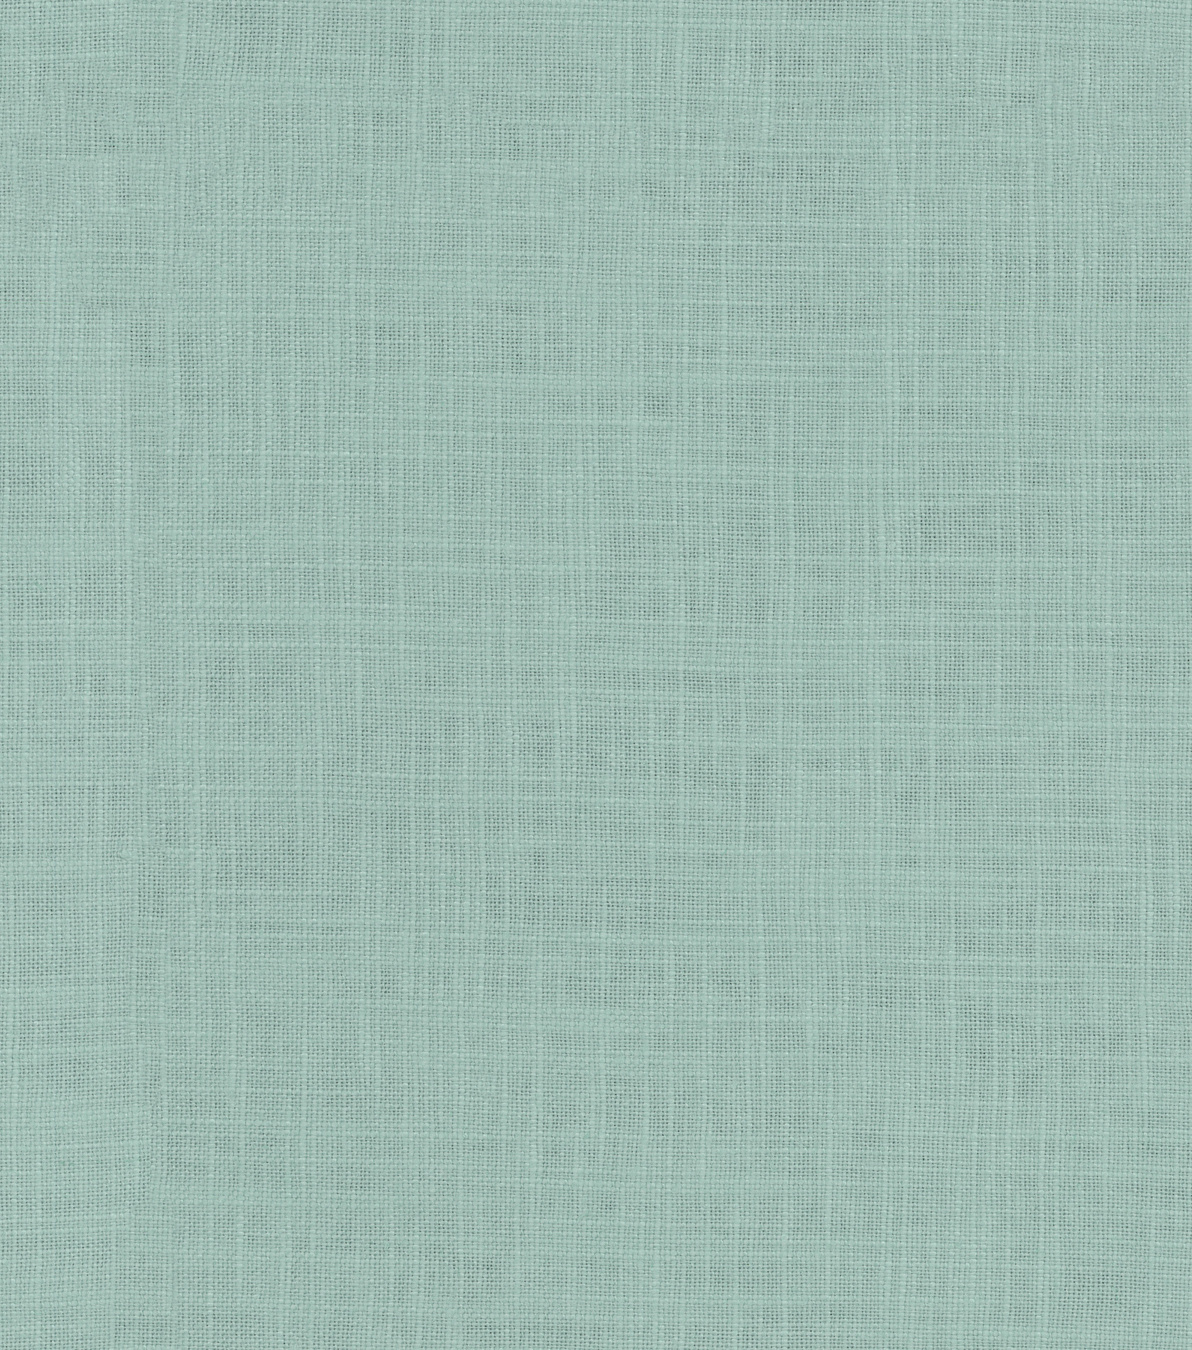 Home Decor 8\u0022x8\u0022 Fabric Swatch-Braemore Pelham Robins Egg